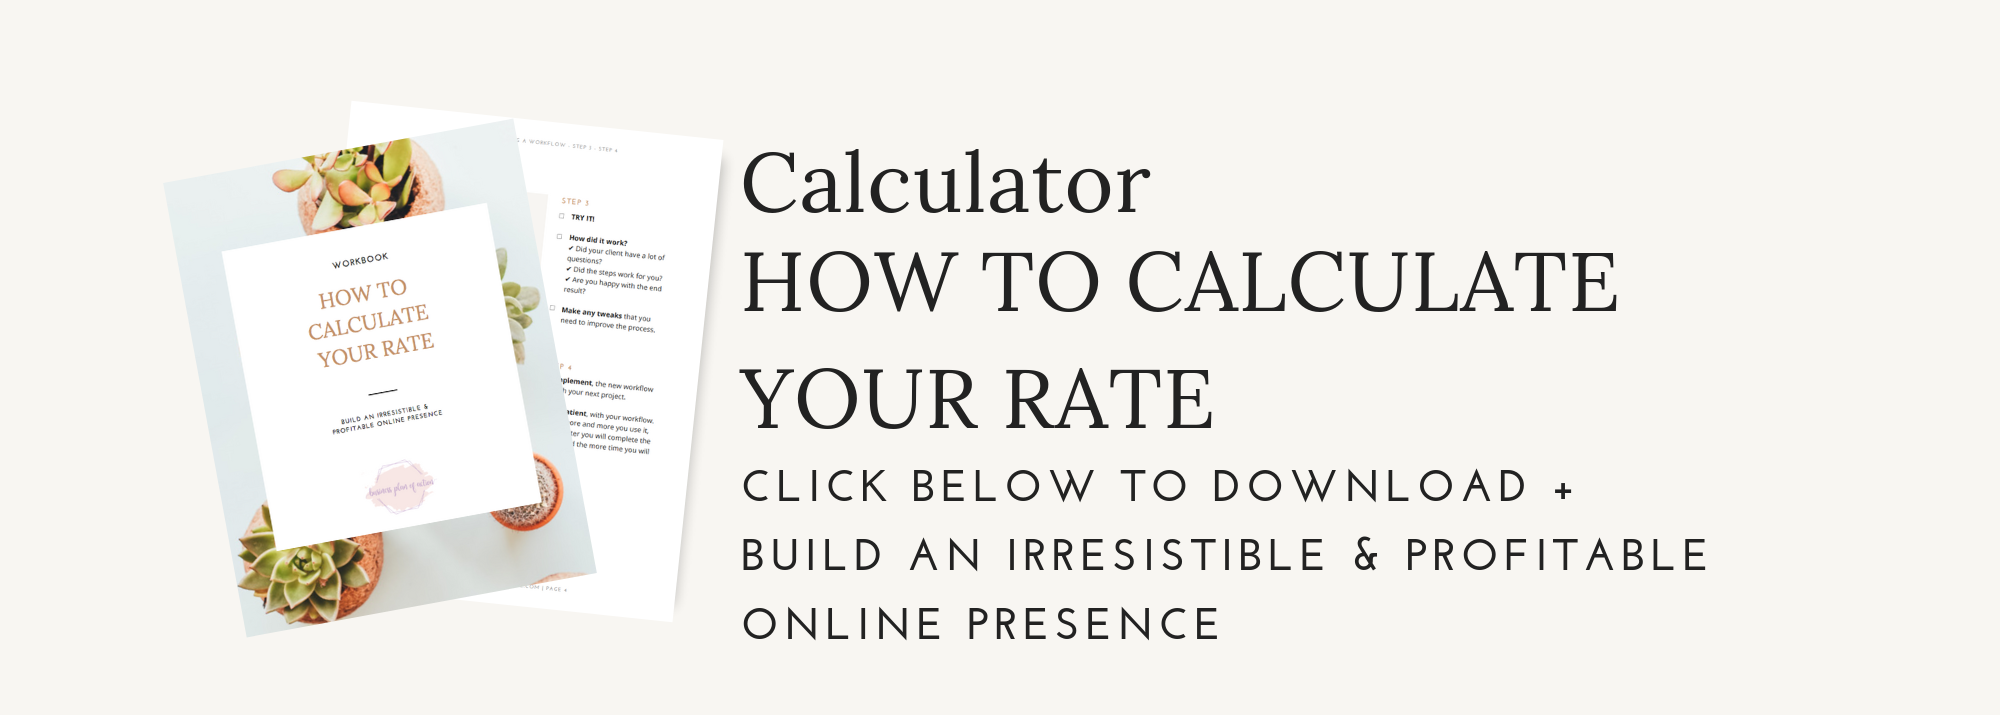 HOW TO CALCULATE YOUR RATE.png